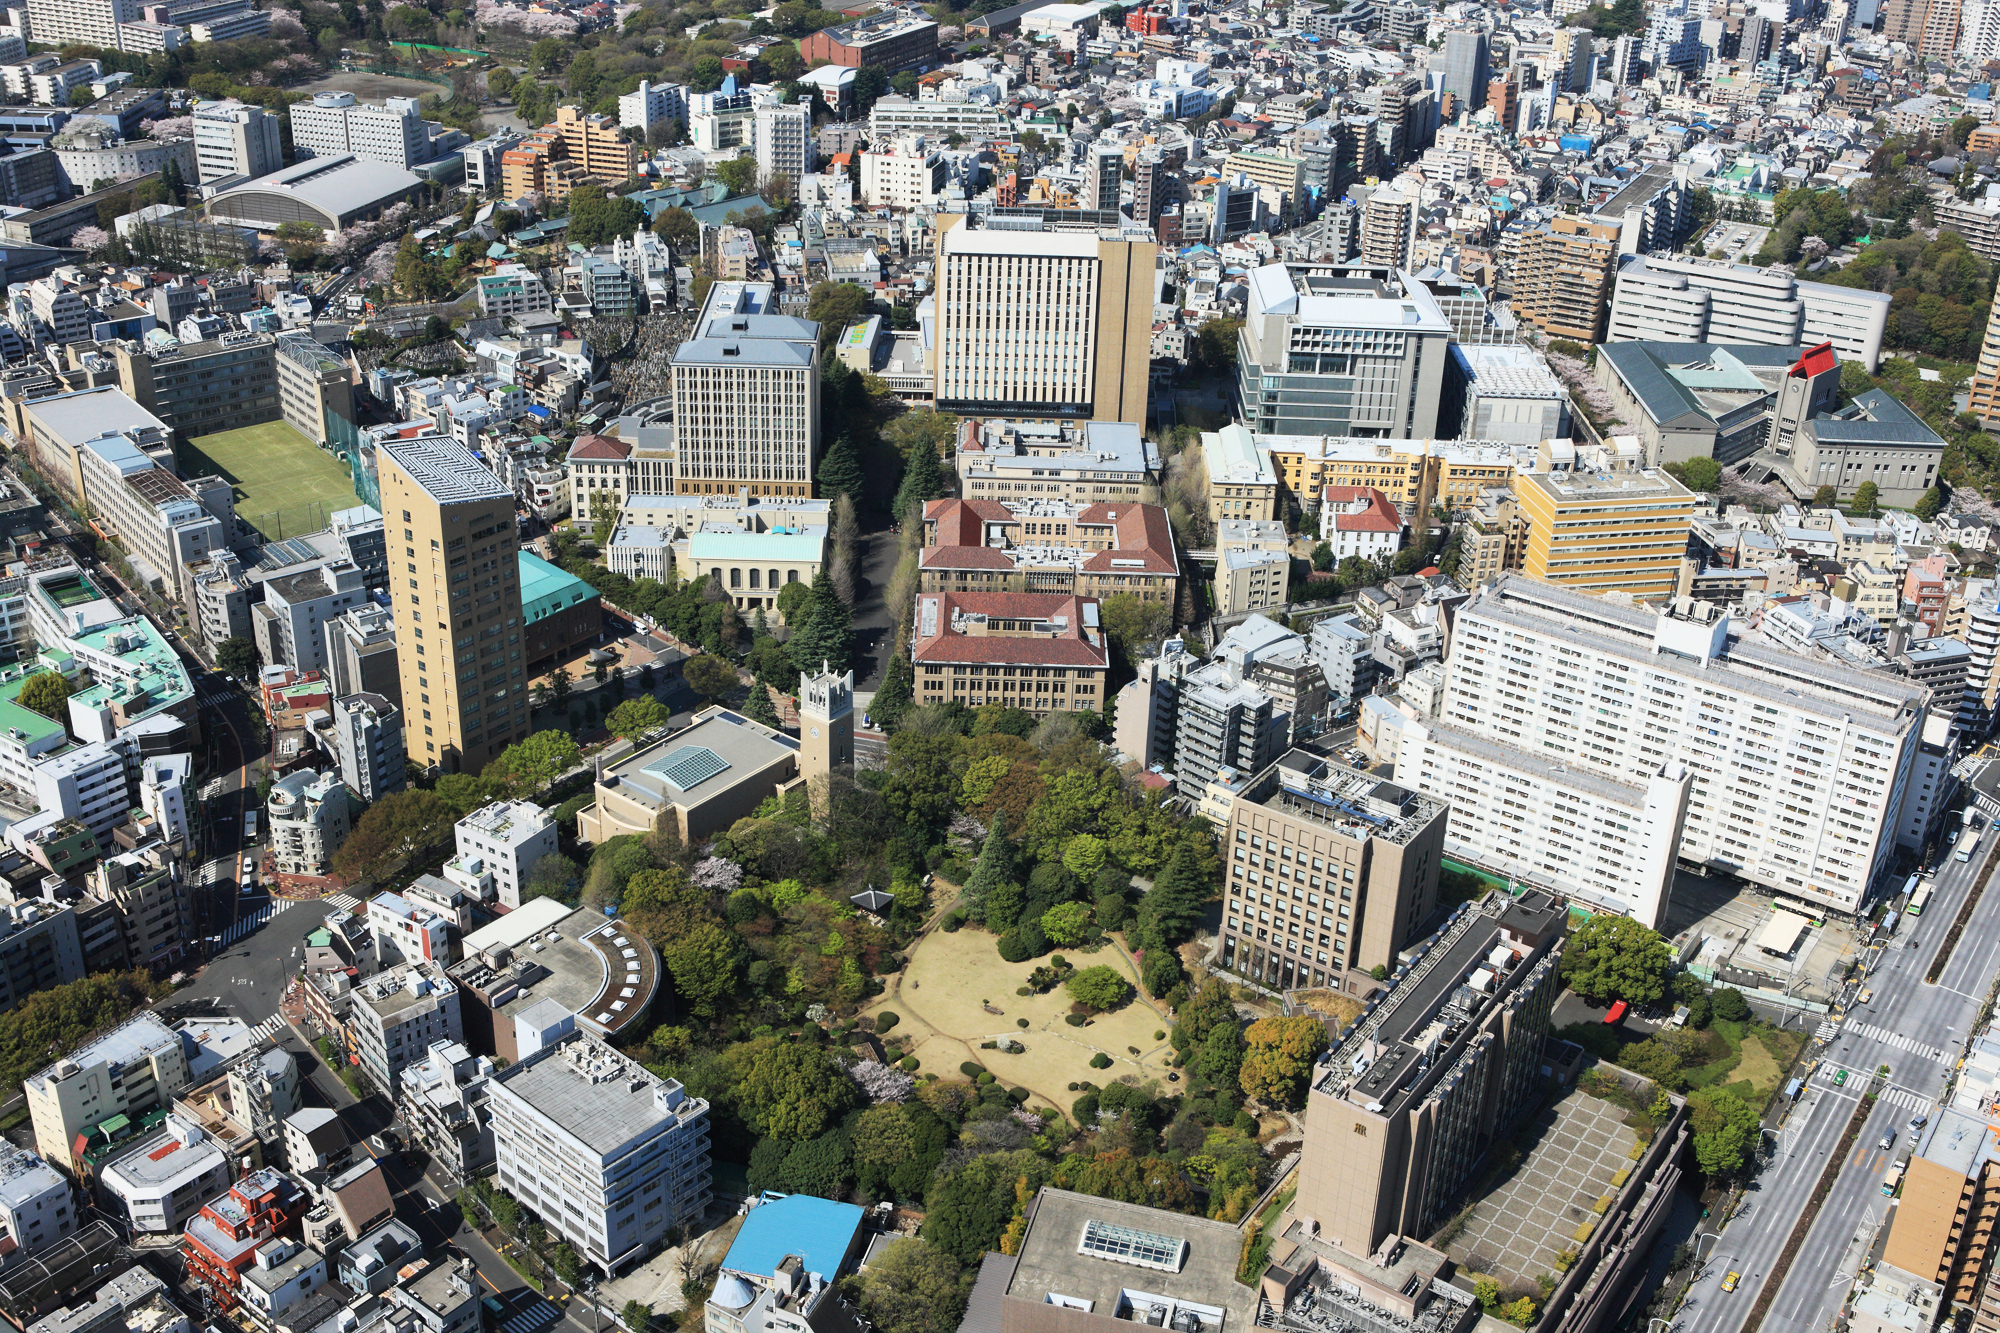 shinjuku tokyo map with Waseda C Us on 7815 besides 8 Tips To Help You Choose A Hotel In Tokyo likewise 7240235238 as well Asakusa Map likewise Waseda C us.